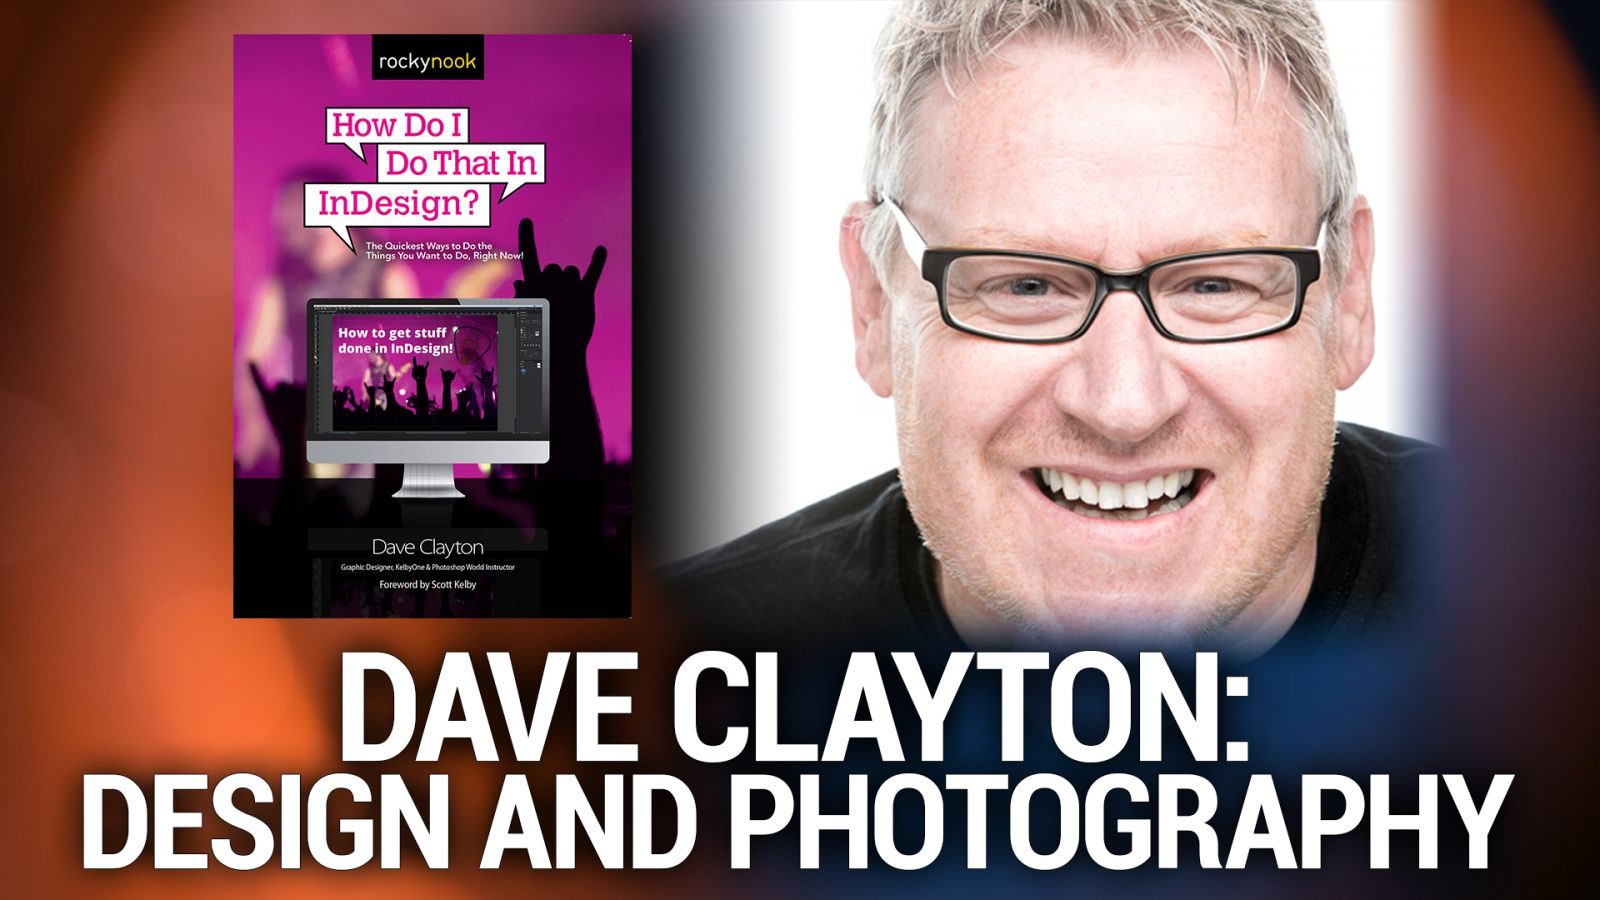 Dave Clayton: Photographers' Go-to Tip | TWiT.TV